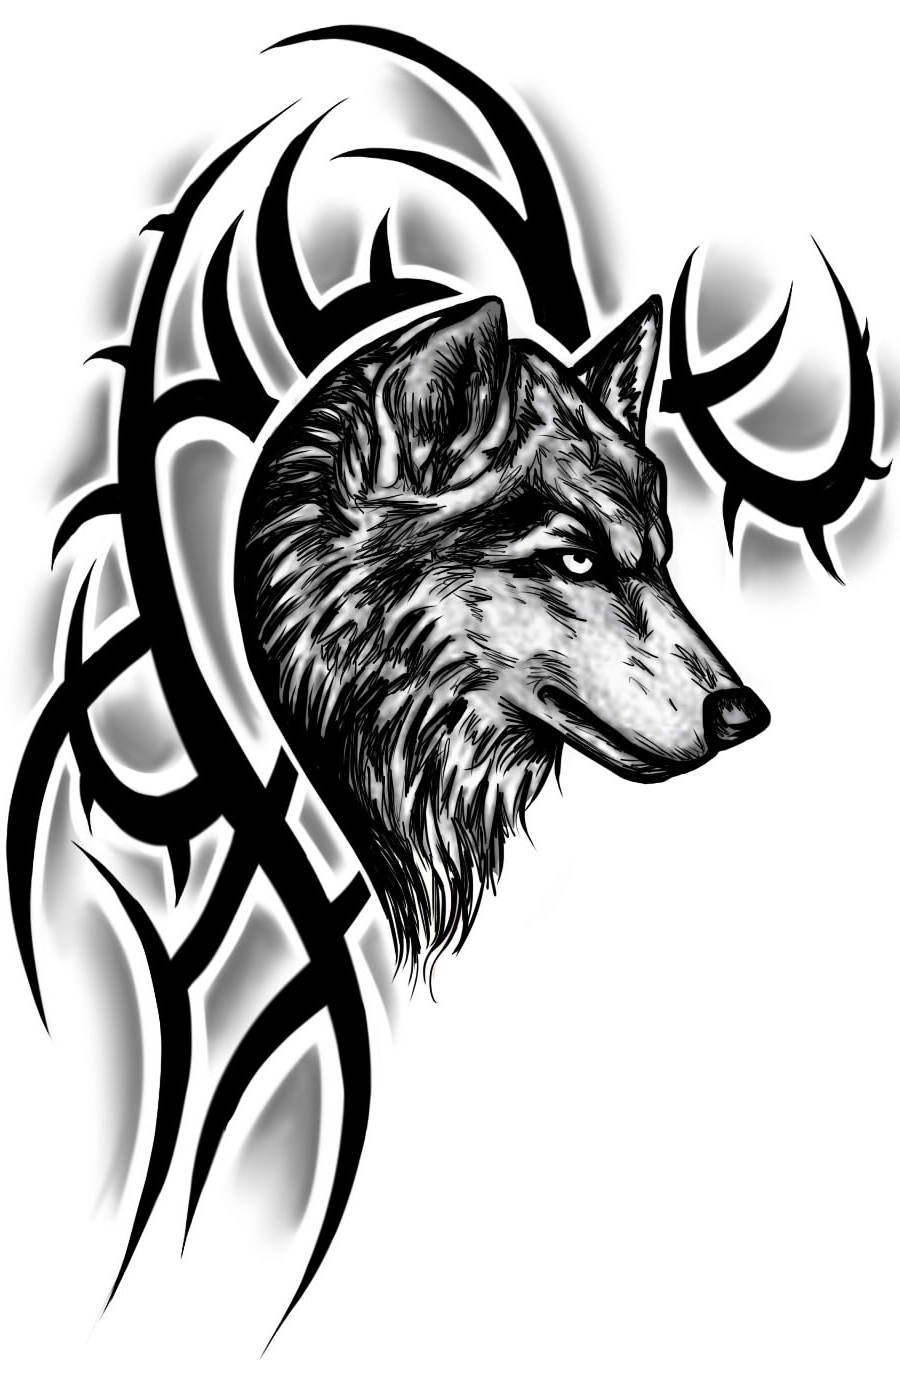 60 tribal wolf tattoos designs and ideas rh askideas com free tribal wolf tattoo designs Tribal Wolf Dream Catcher Tattoo Designs